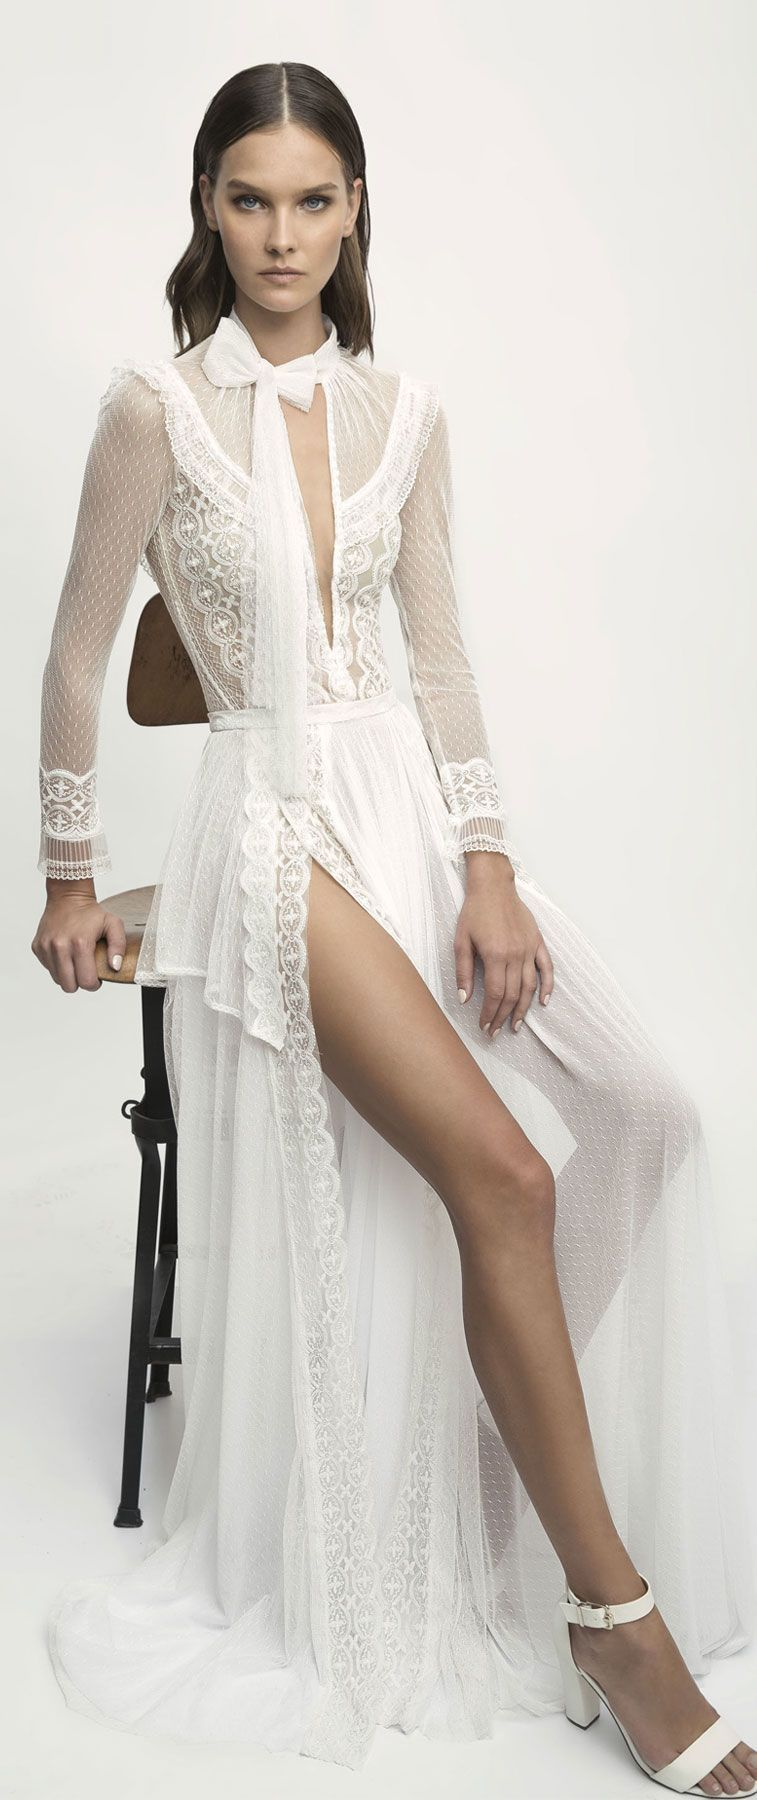 Lior charchy wedding dresses nyc bridal collection